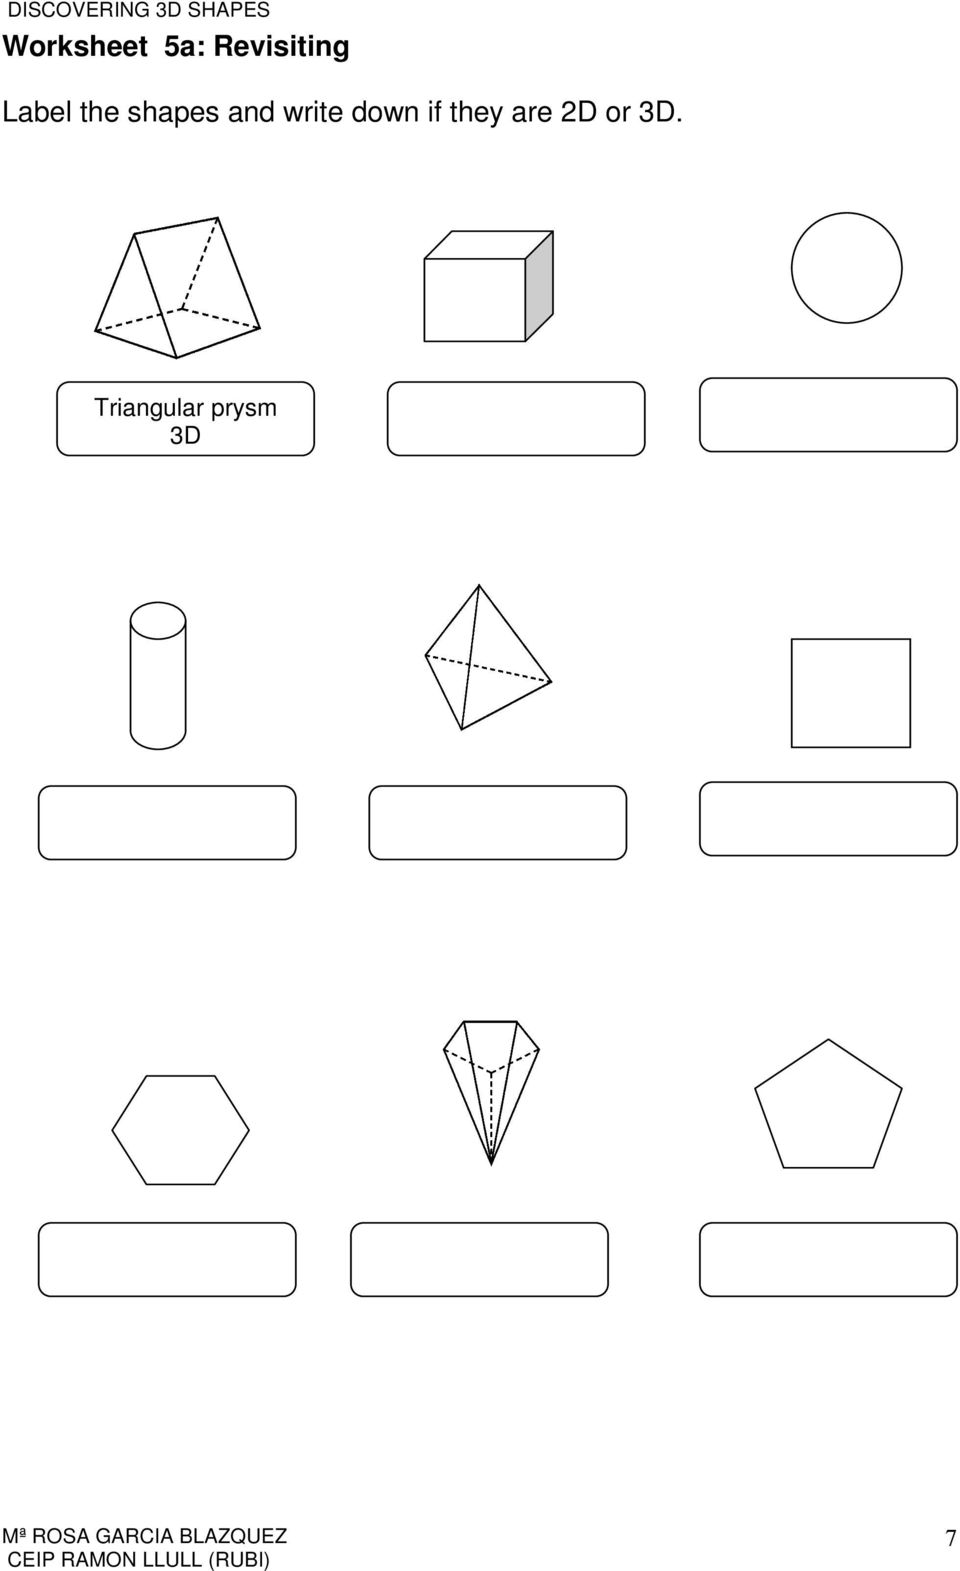 worksheet Non Symmetrical Shapes Worksheet discovering 3d shapes pdf write down if they are